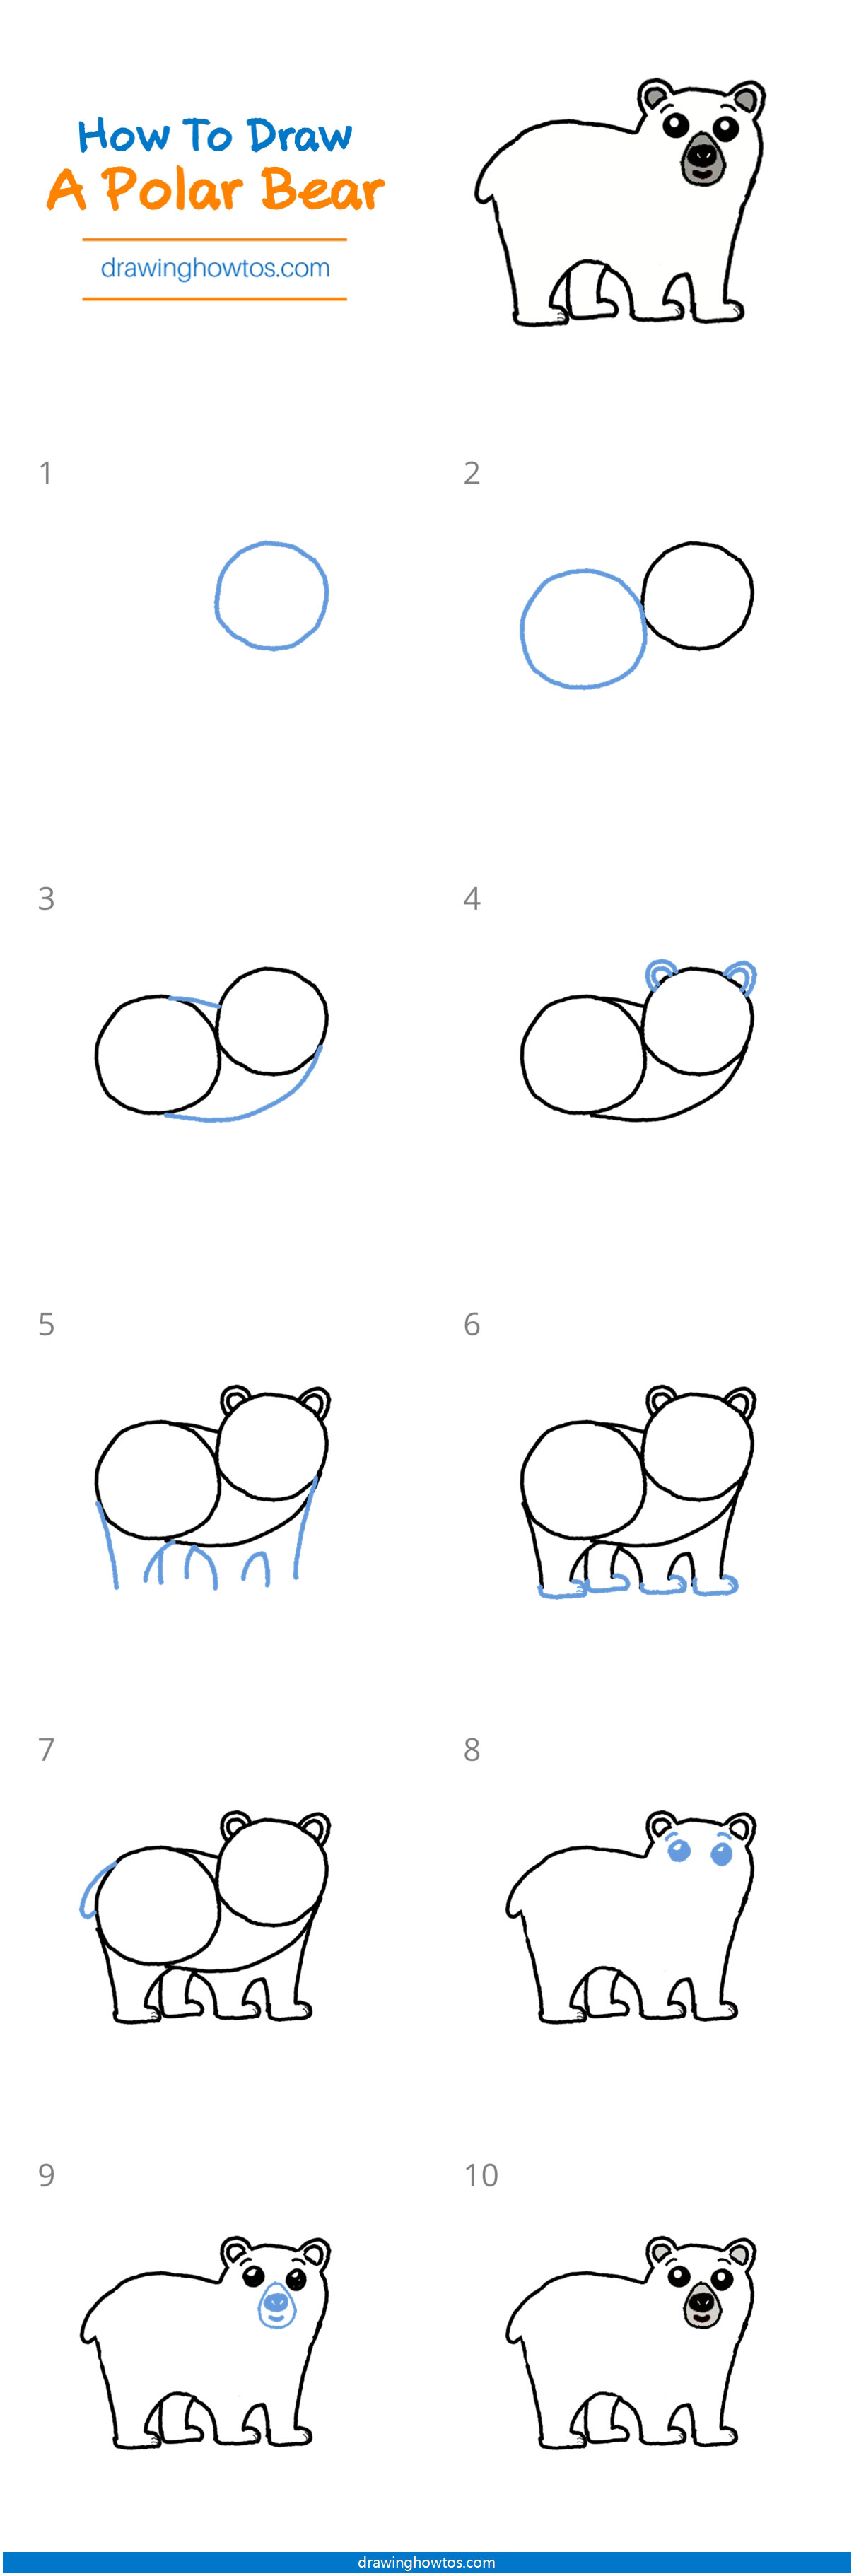 How To Draw A Polar Bear Step By Step Easy Drawing Guides Drawing Howtos